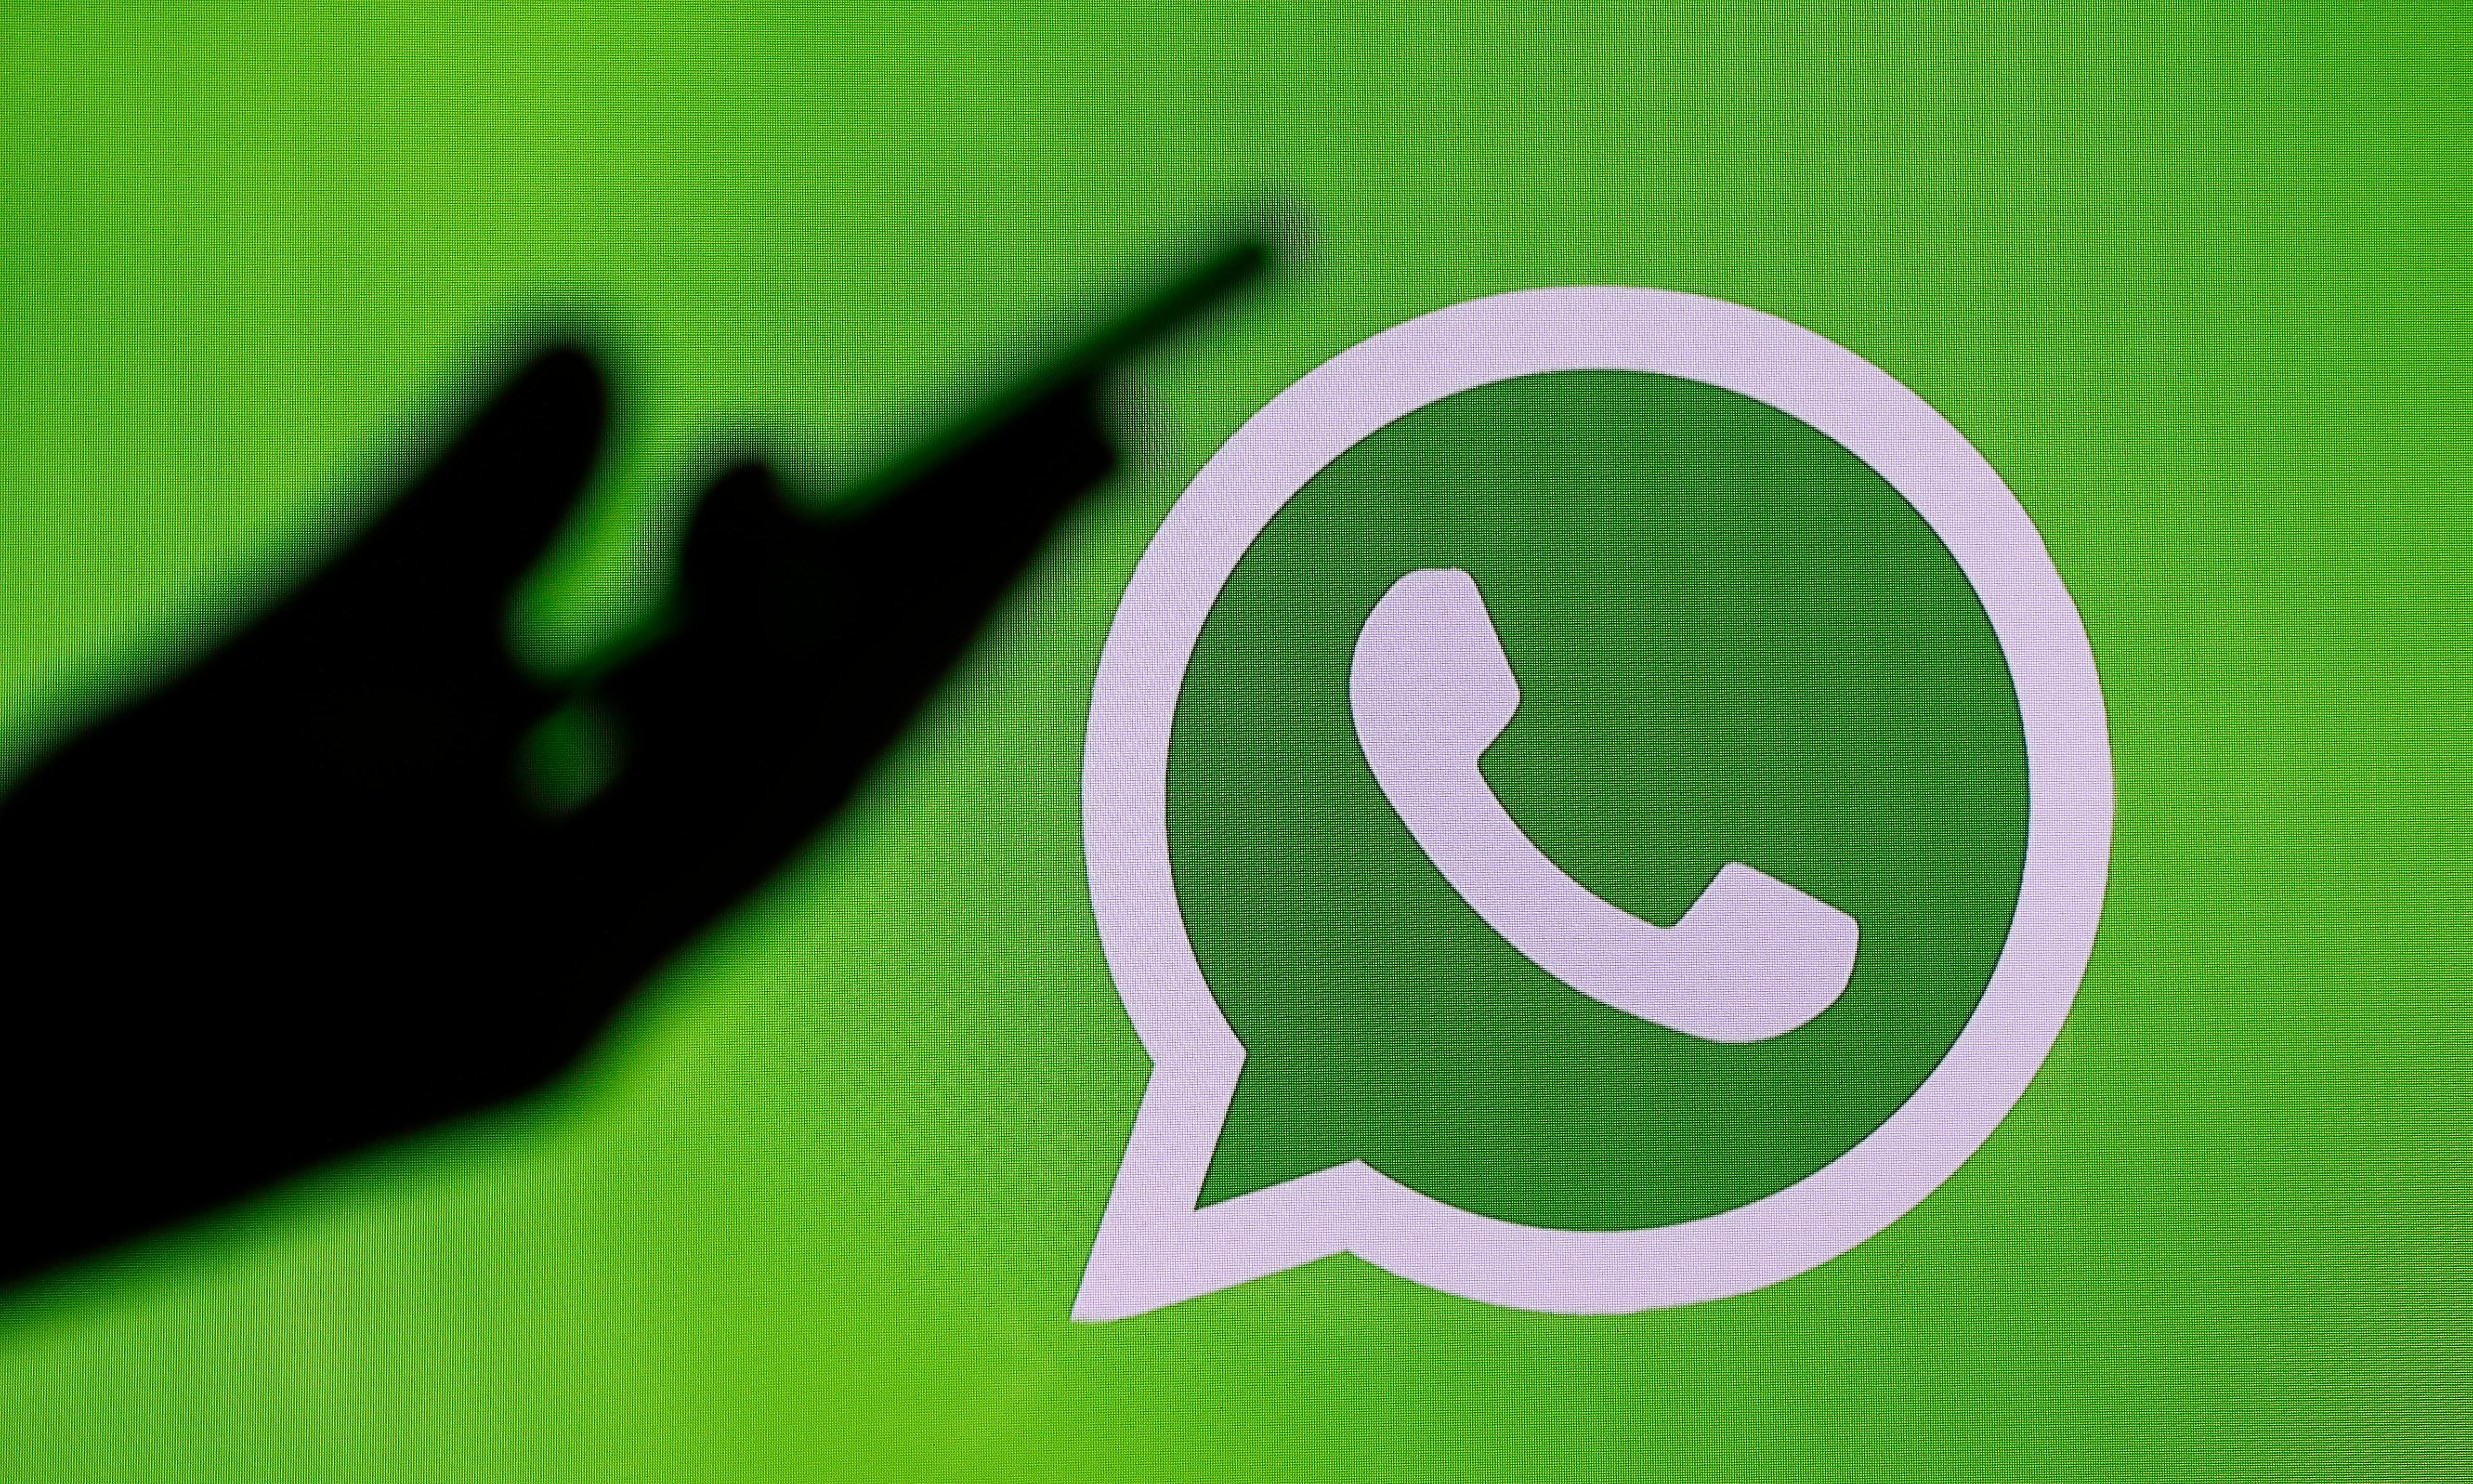 WhatsApp urges users to update app after discovering spyware vulnerability